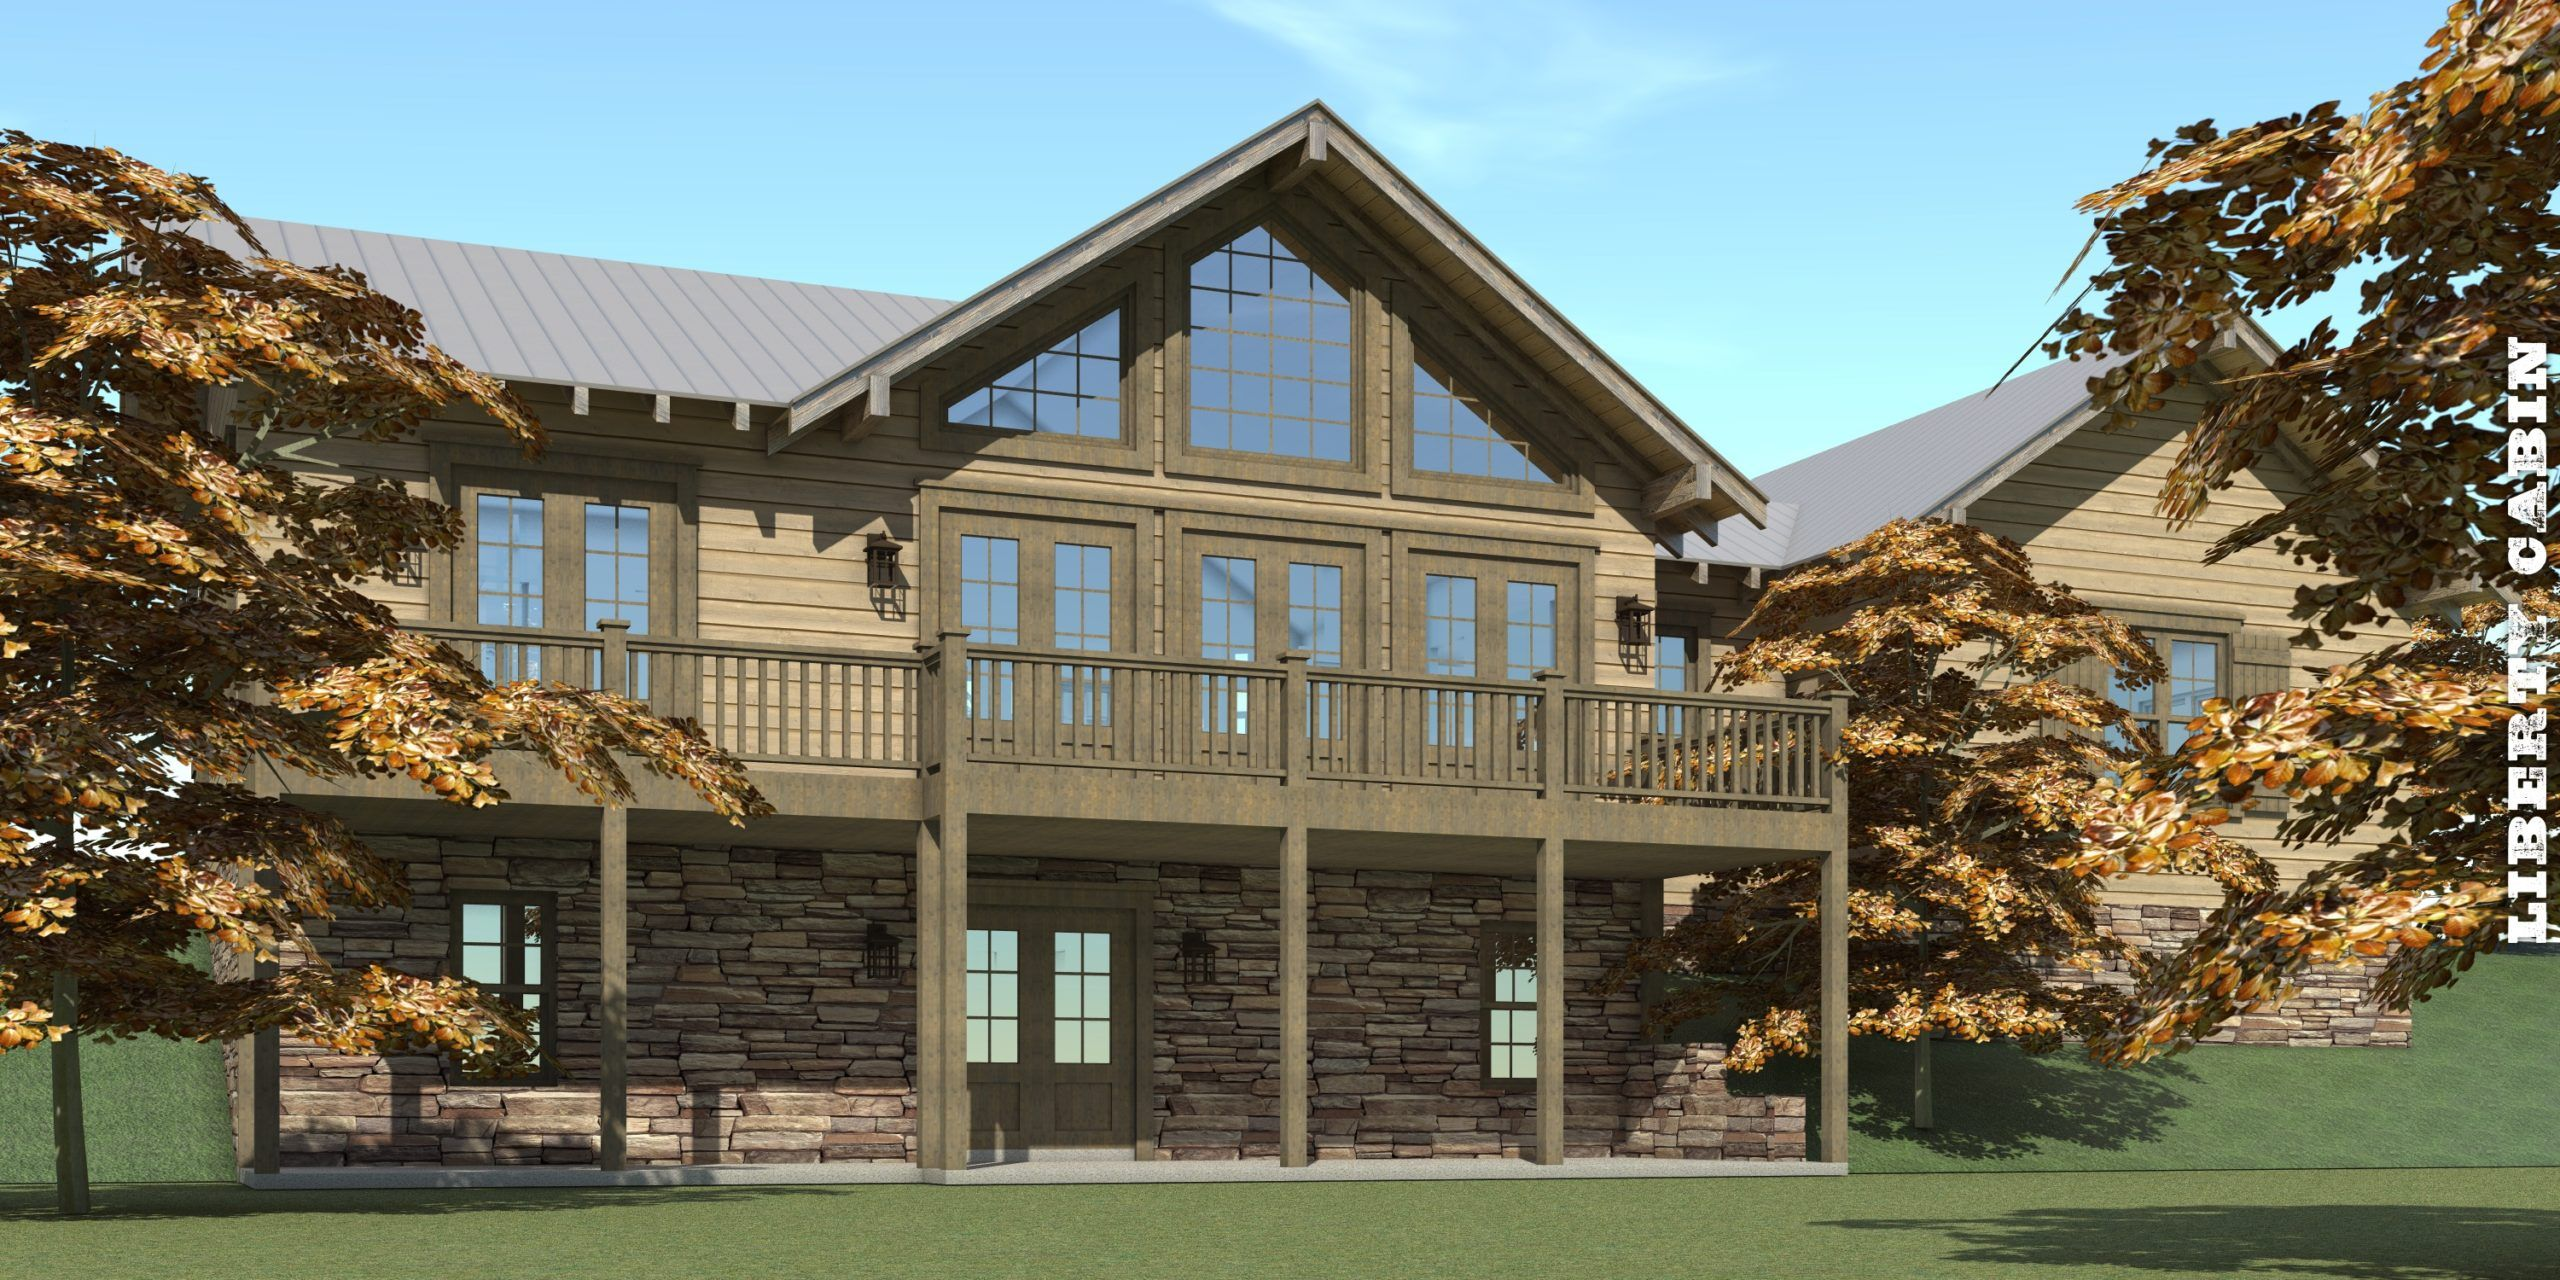 Rustic 3 Bedroom Home with Walkout Basement Tyree House Plans